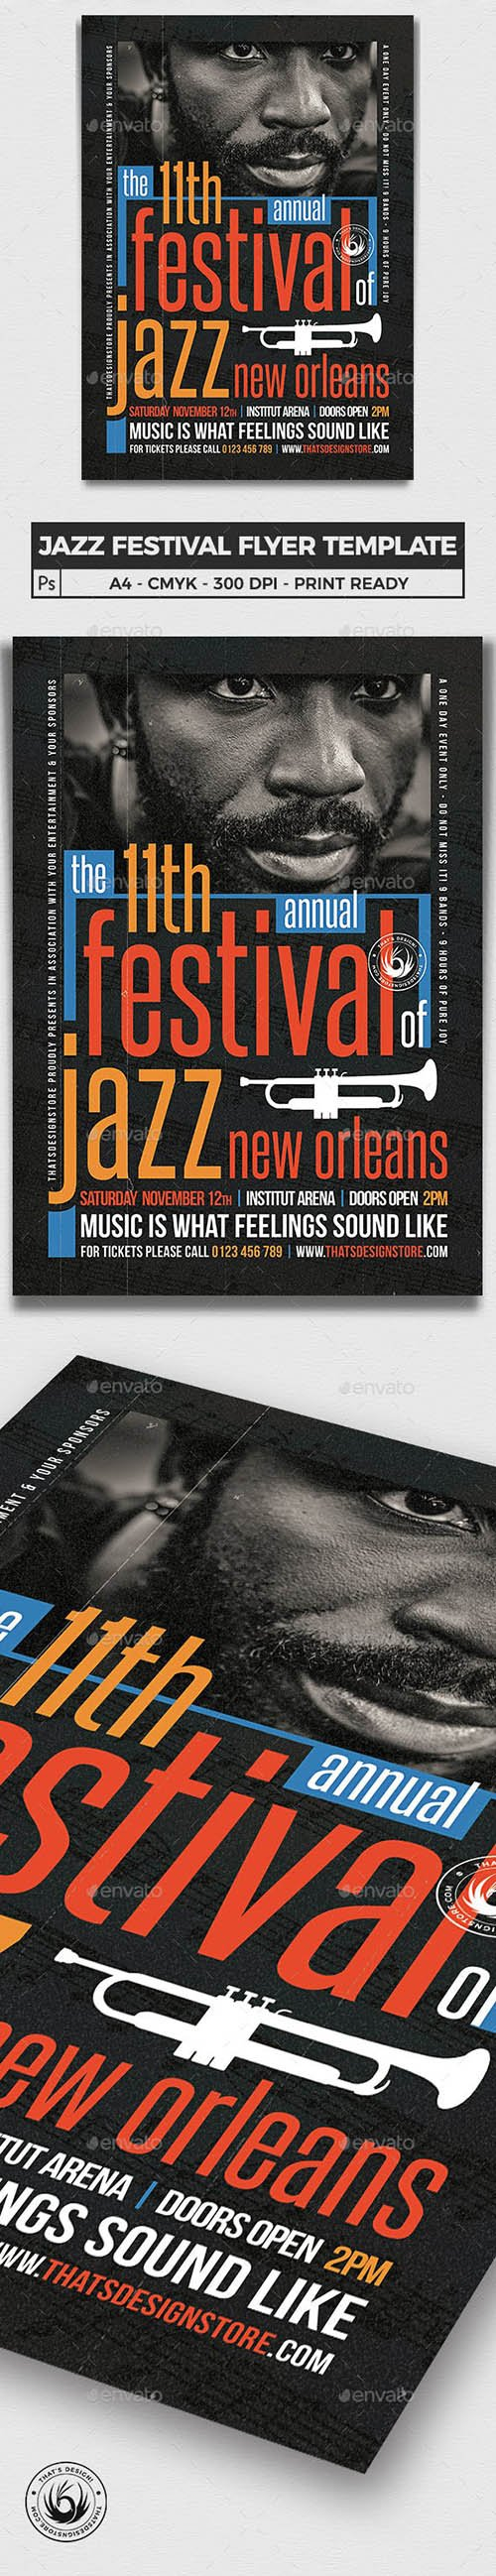 Graphicriver - Jazz Festival Flyer Template V10 23202196